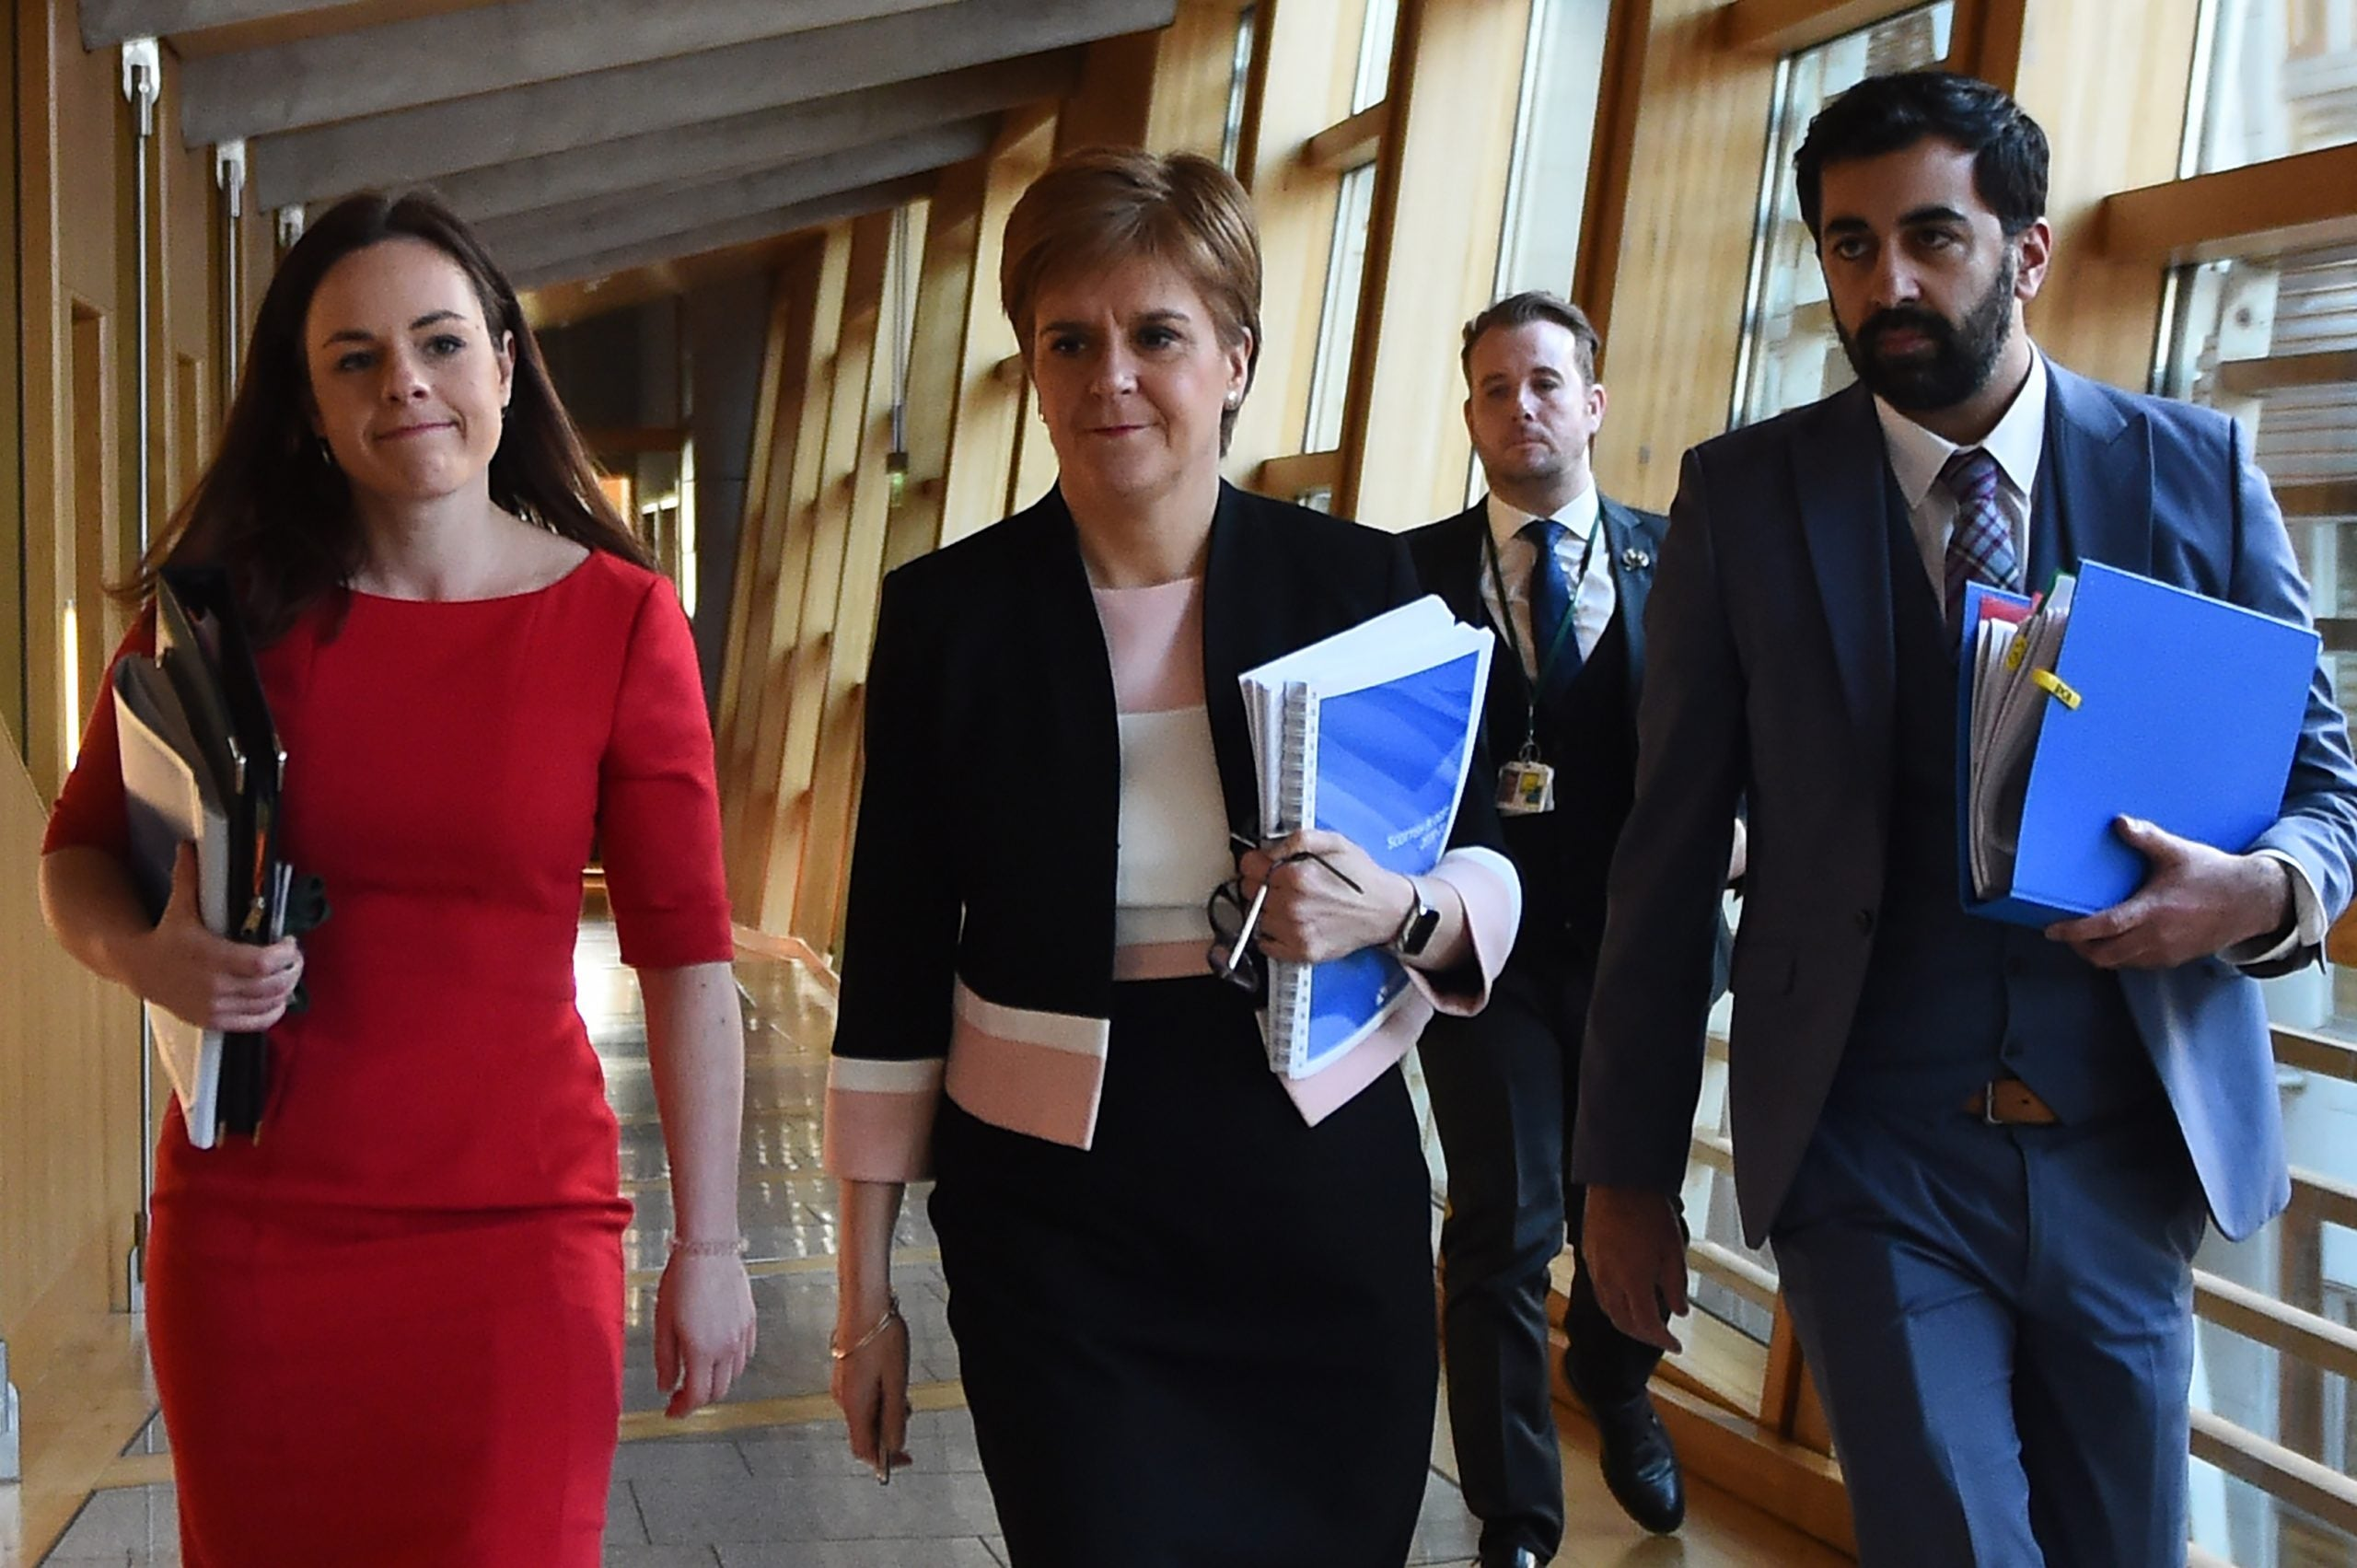 Why the SNP continues to survive political scandal